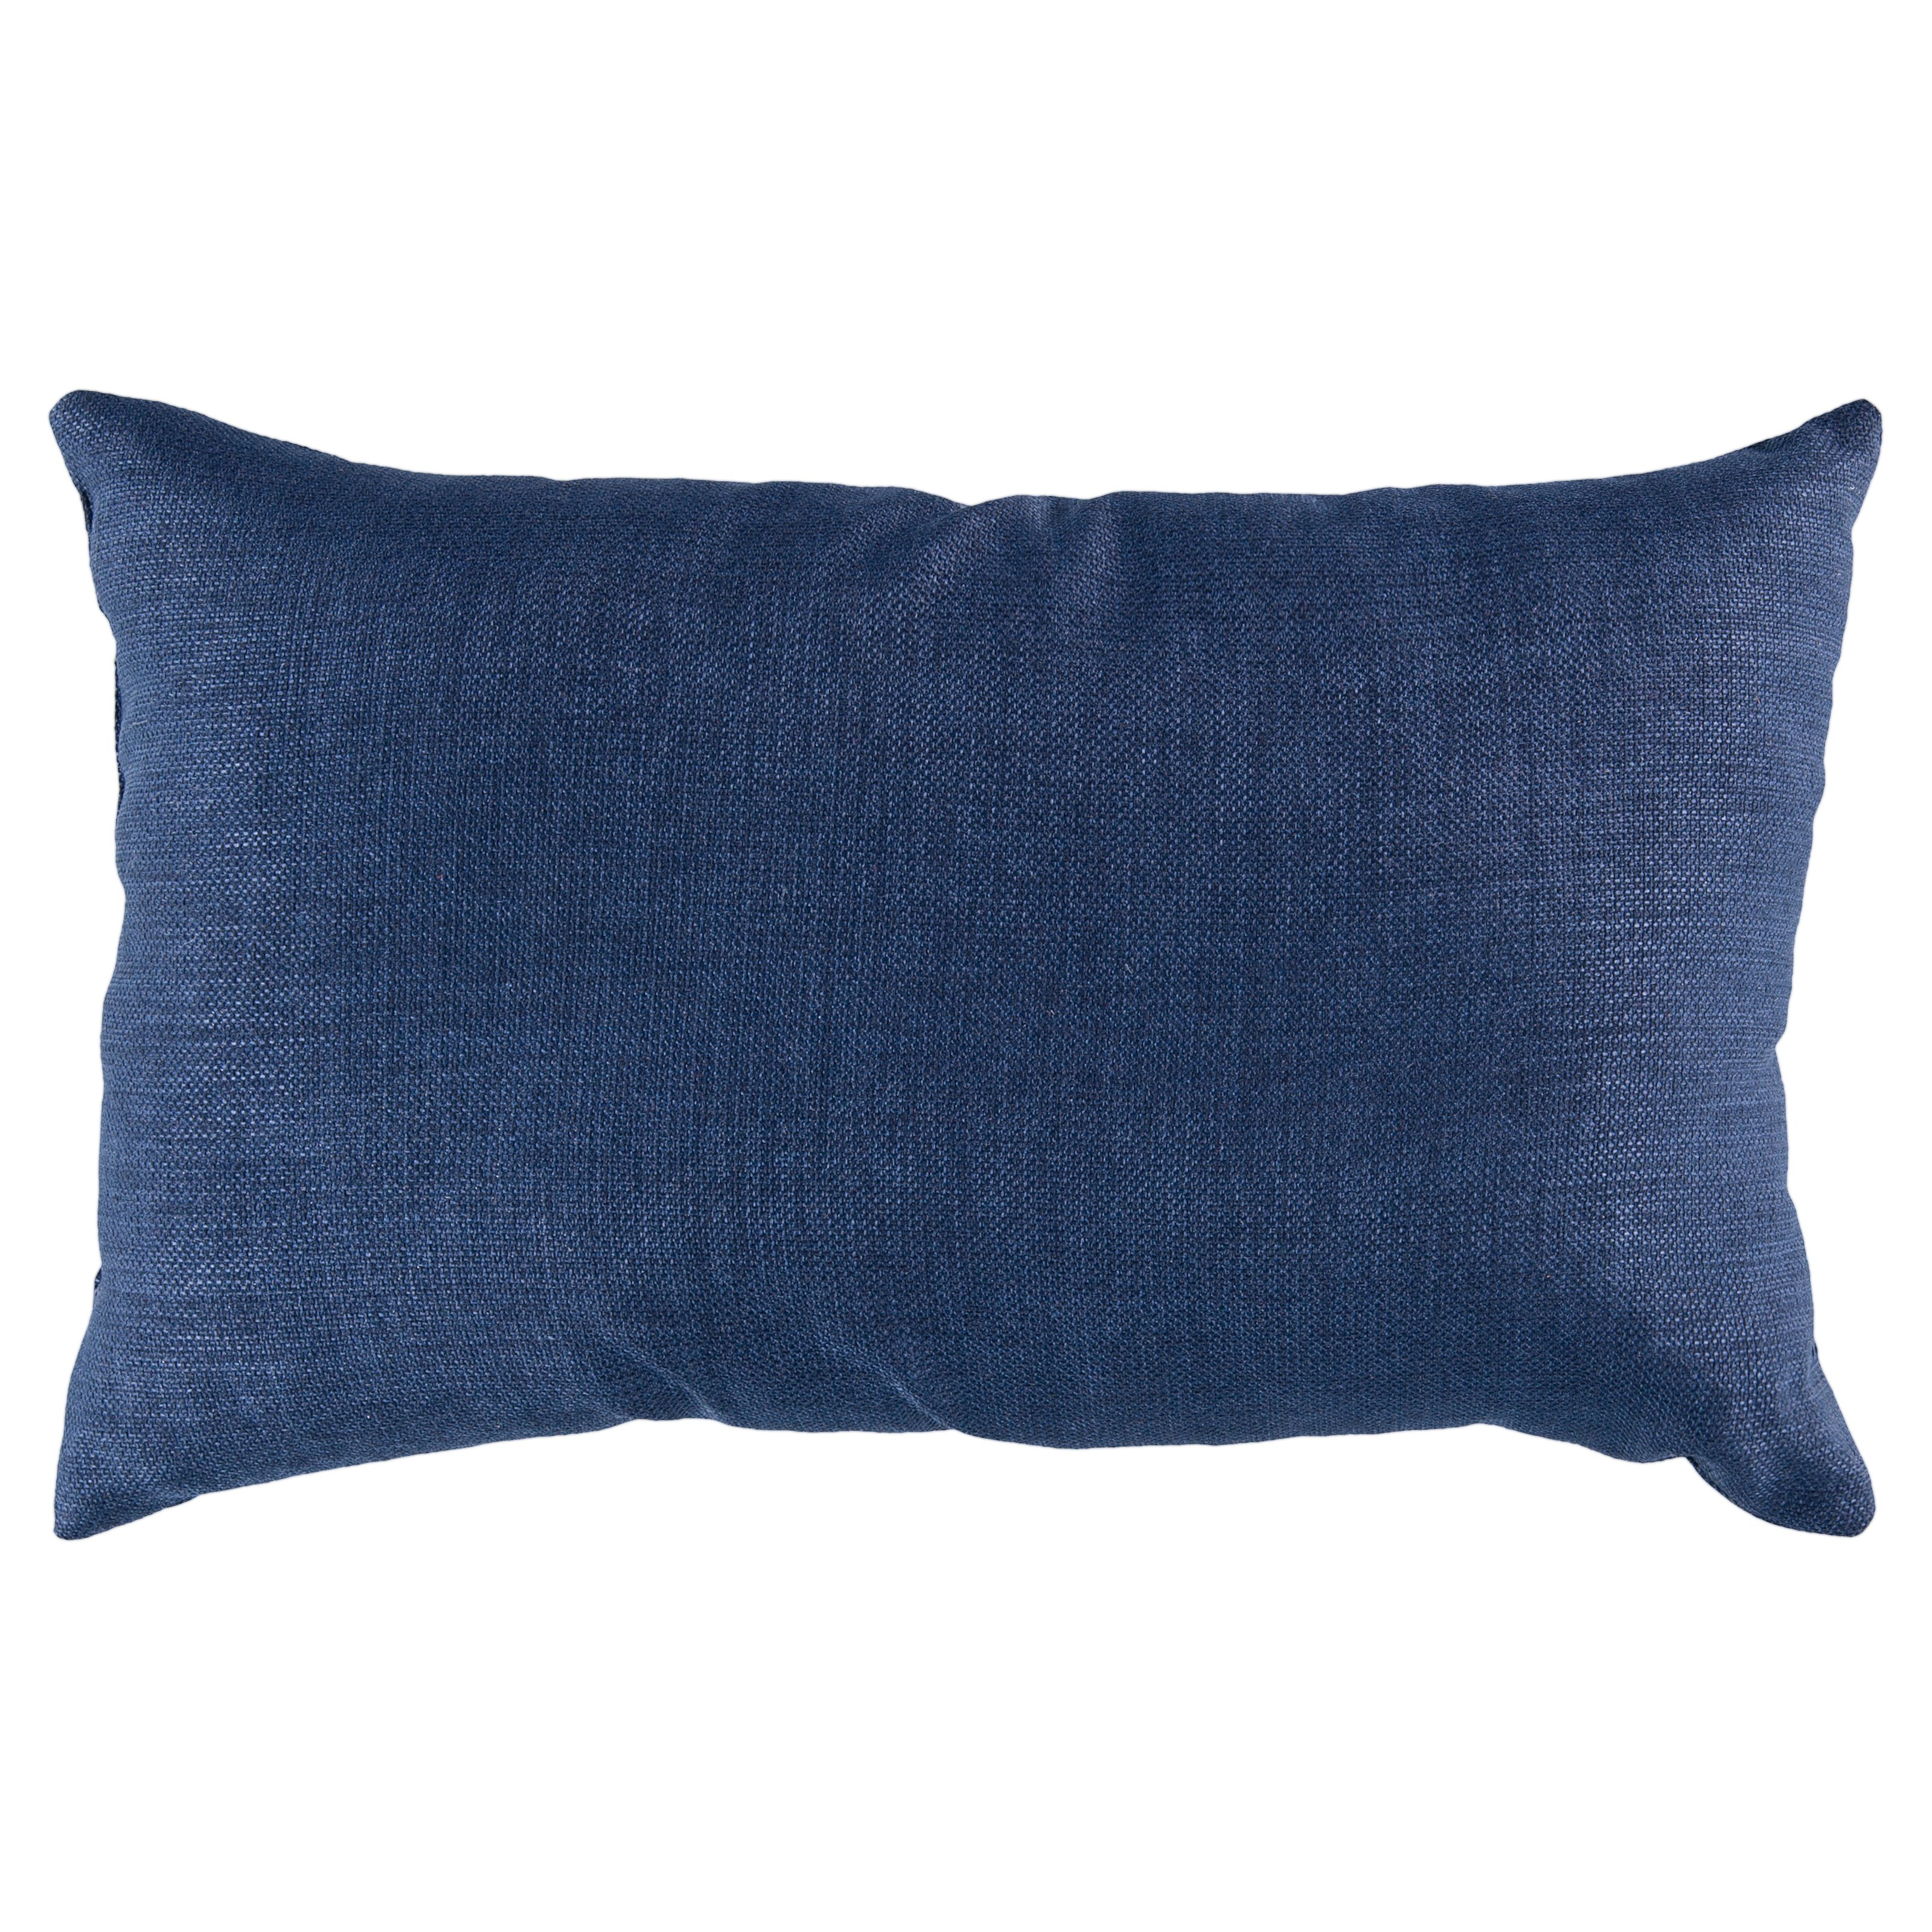 Surya 13 x 20 in. Polyester Decorative Pillow